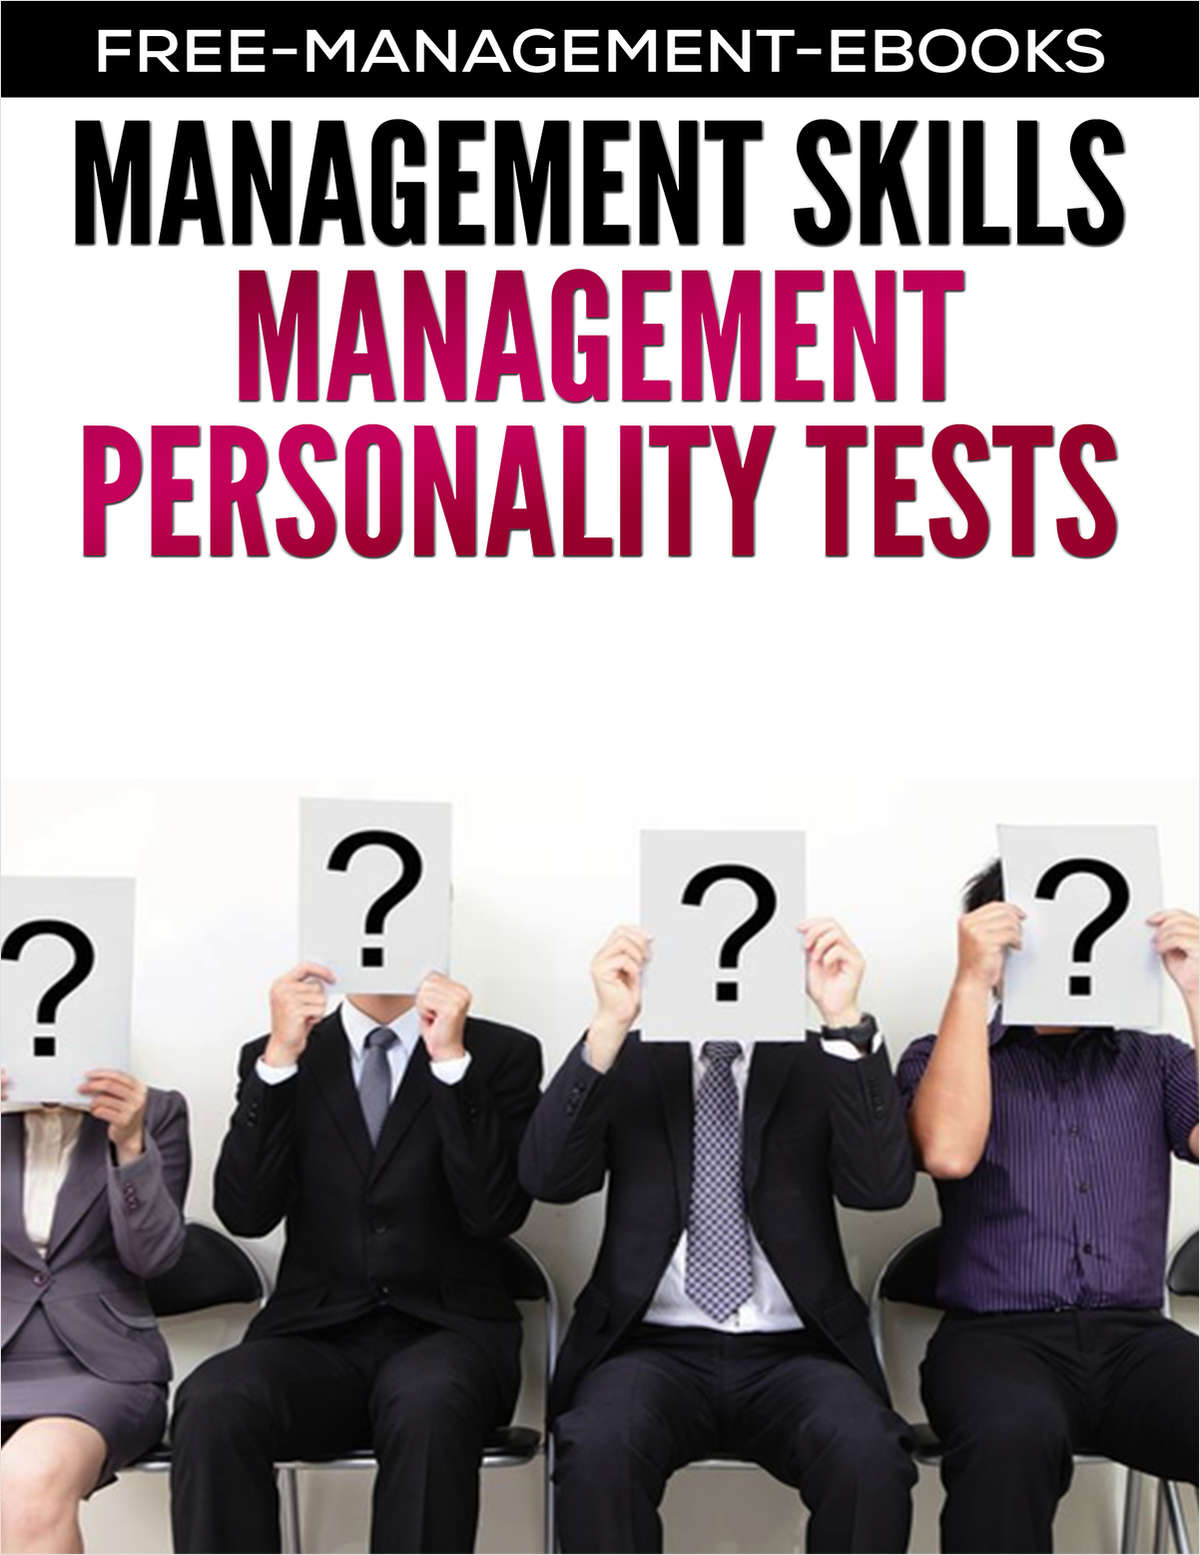 Preparing for Management Personality Tests - Developing Your Management Skills